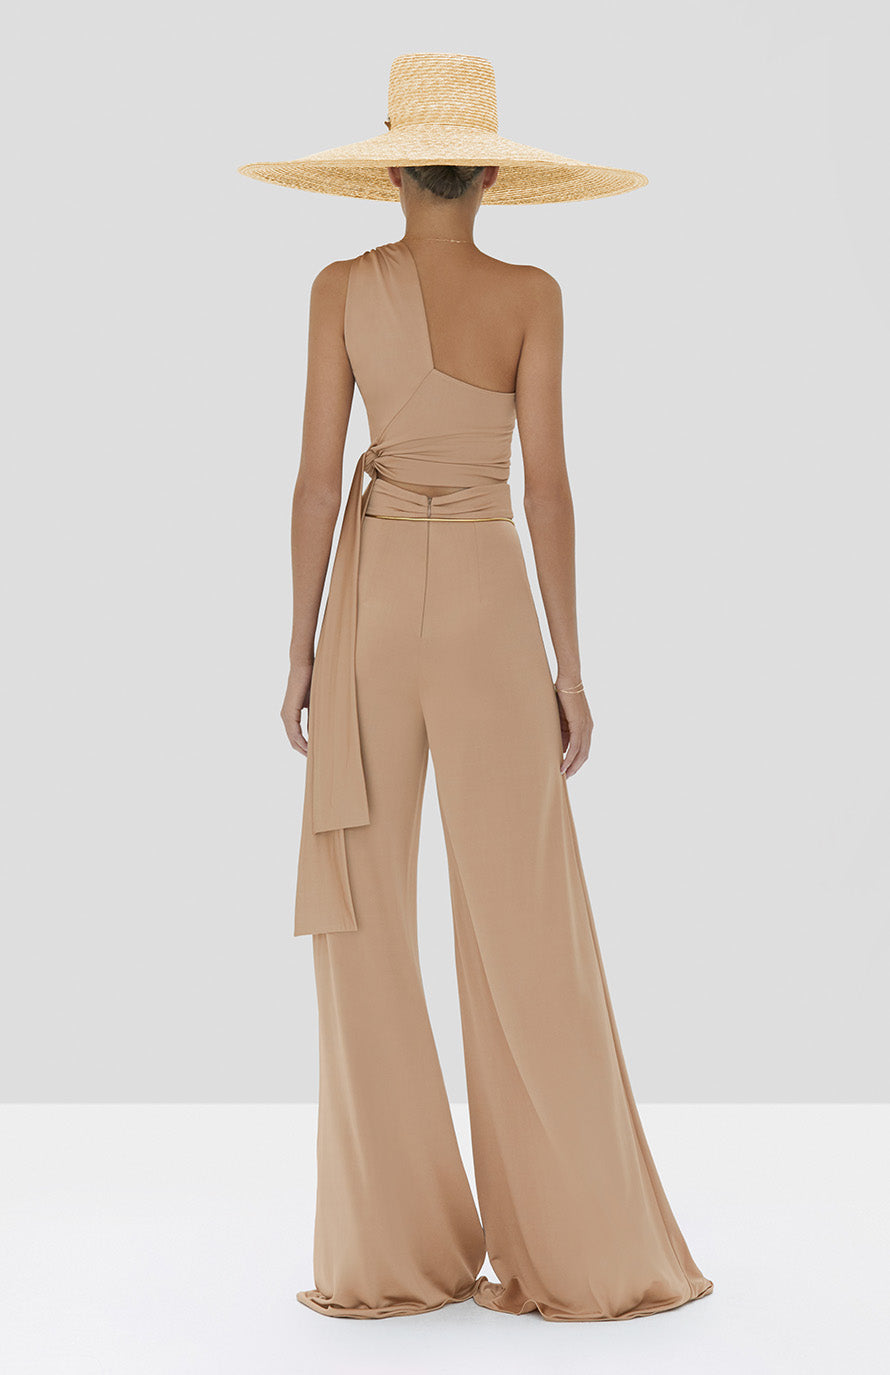 Alexis Gwen Top and Camilo Pant in Tan from the Spring Summer 2020 Collection - Rear View